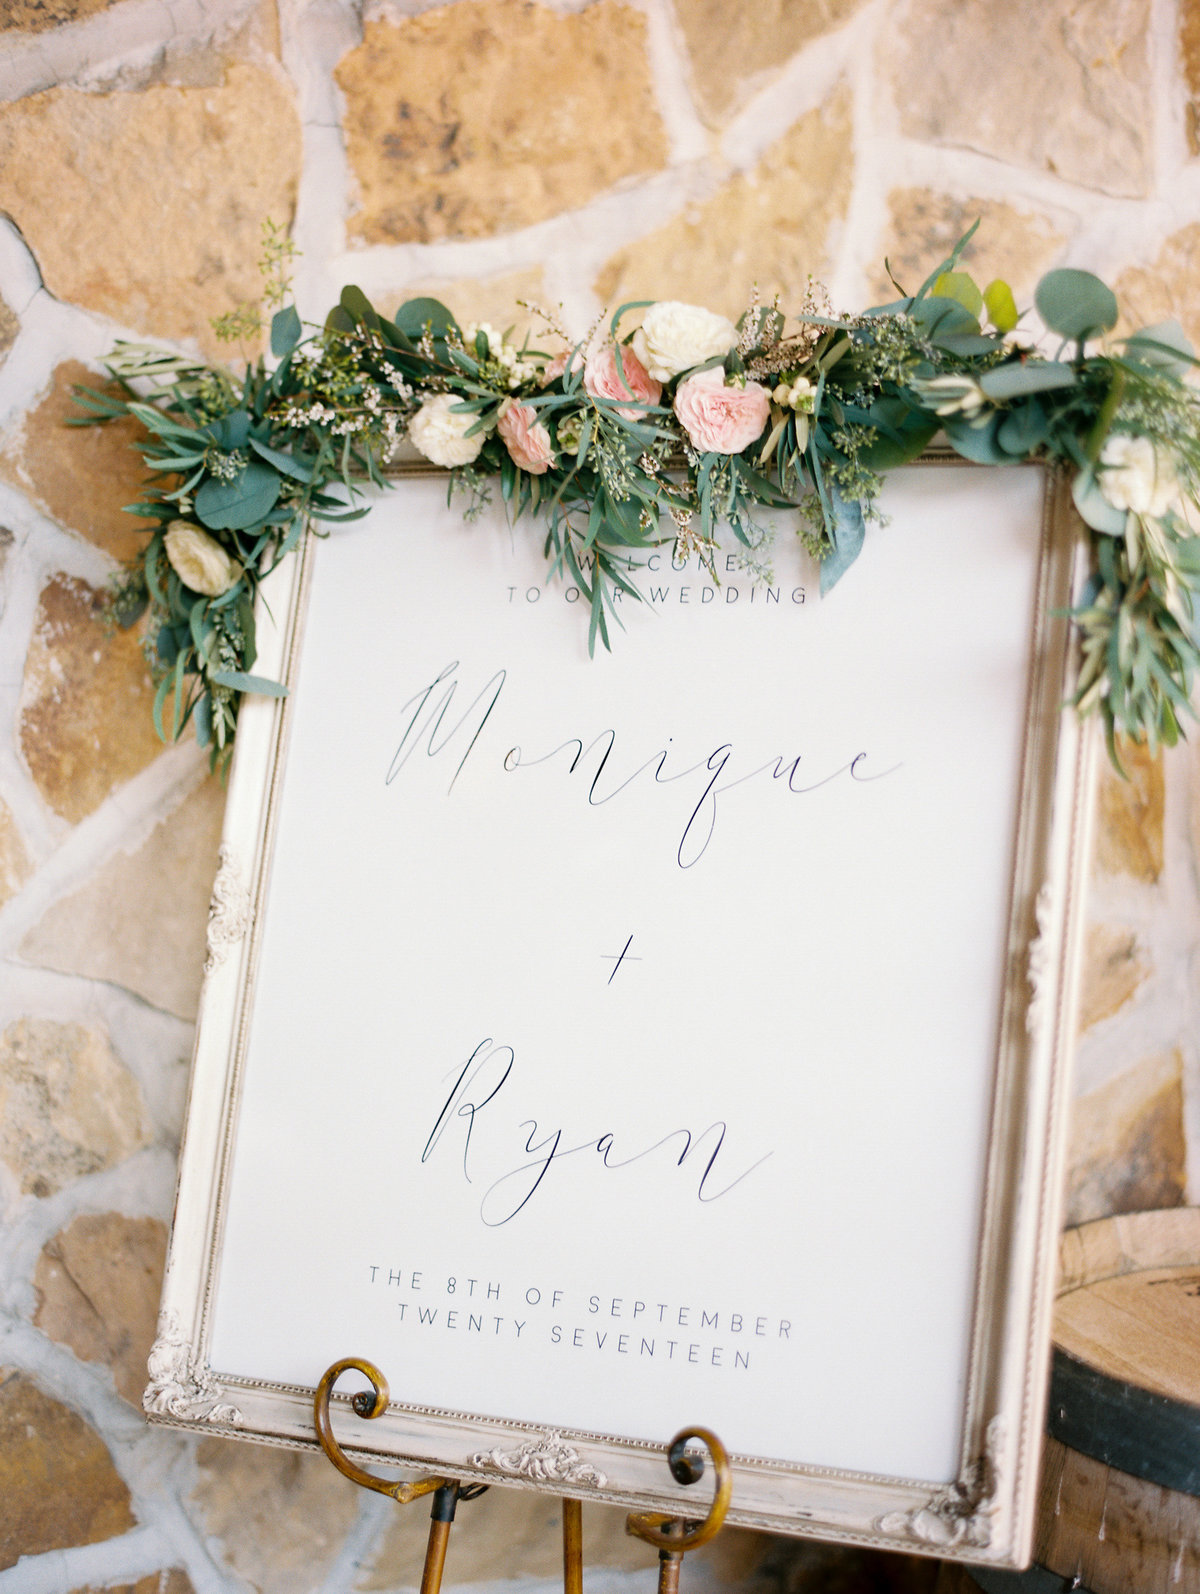 Natalie Bray Studios, Natalie Bray Photography, Southern California Wedding Photographer, Fine Art wedding, Destination Wedding Photographer, Sonoma Wedding Photographer-41